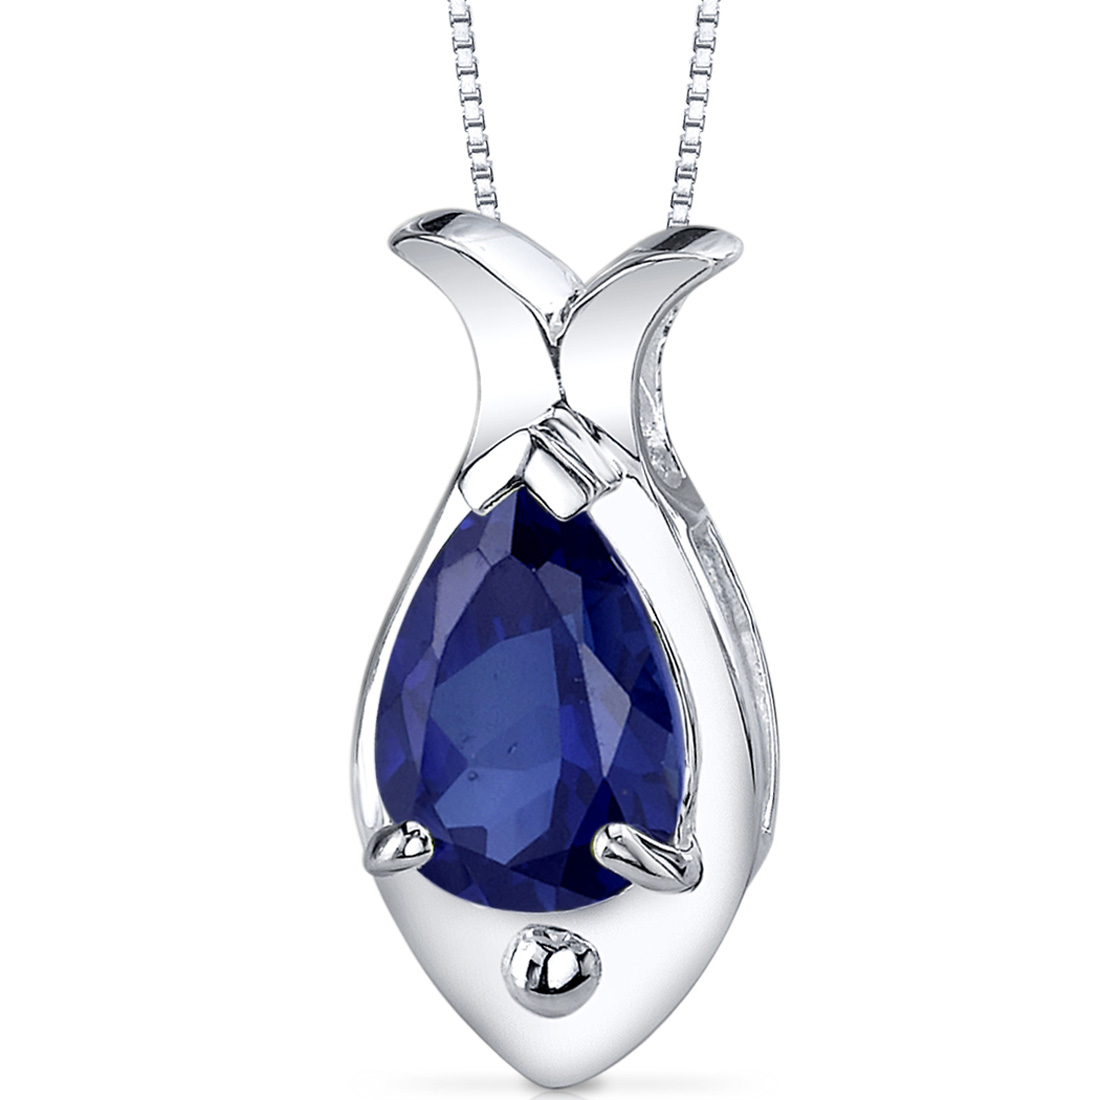 peora Fish Design 2.50 carats Pear Shape Sterling Silver Blue Sapphire Pendant at Sears.com